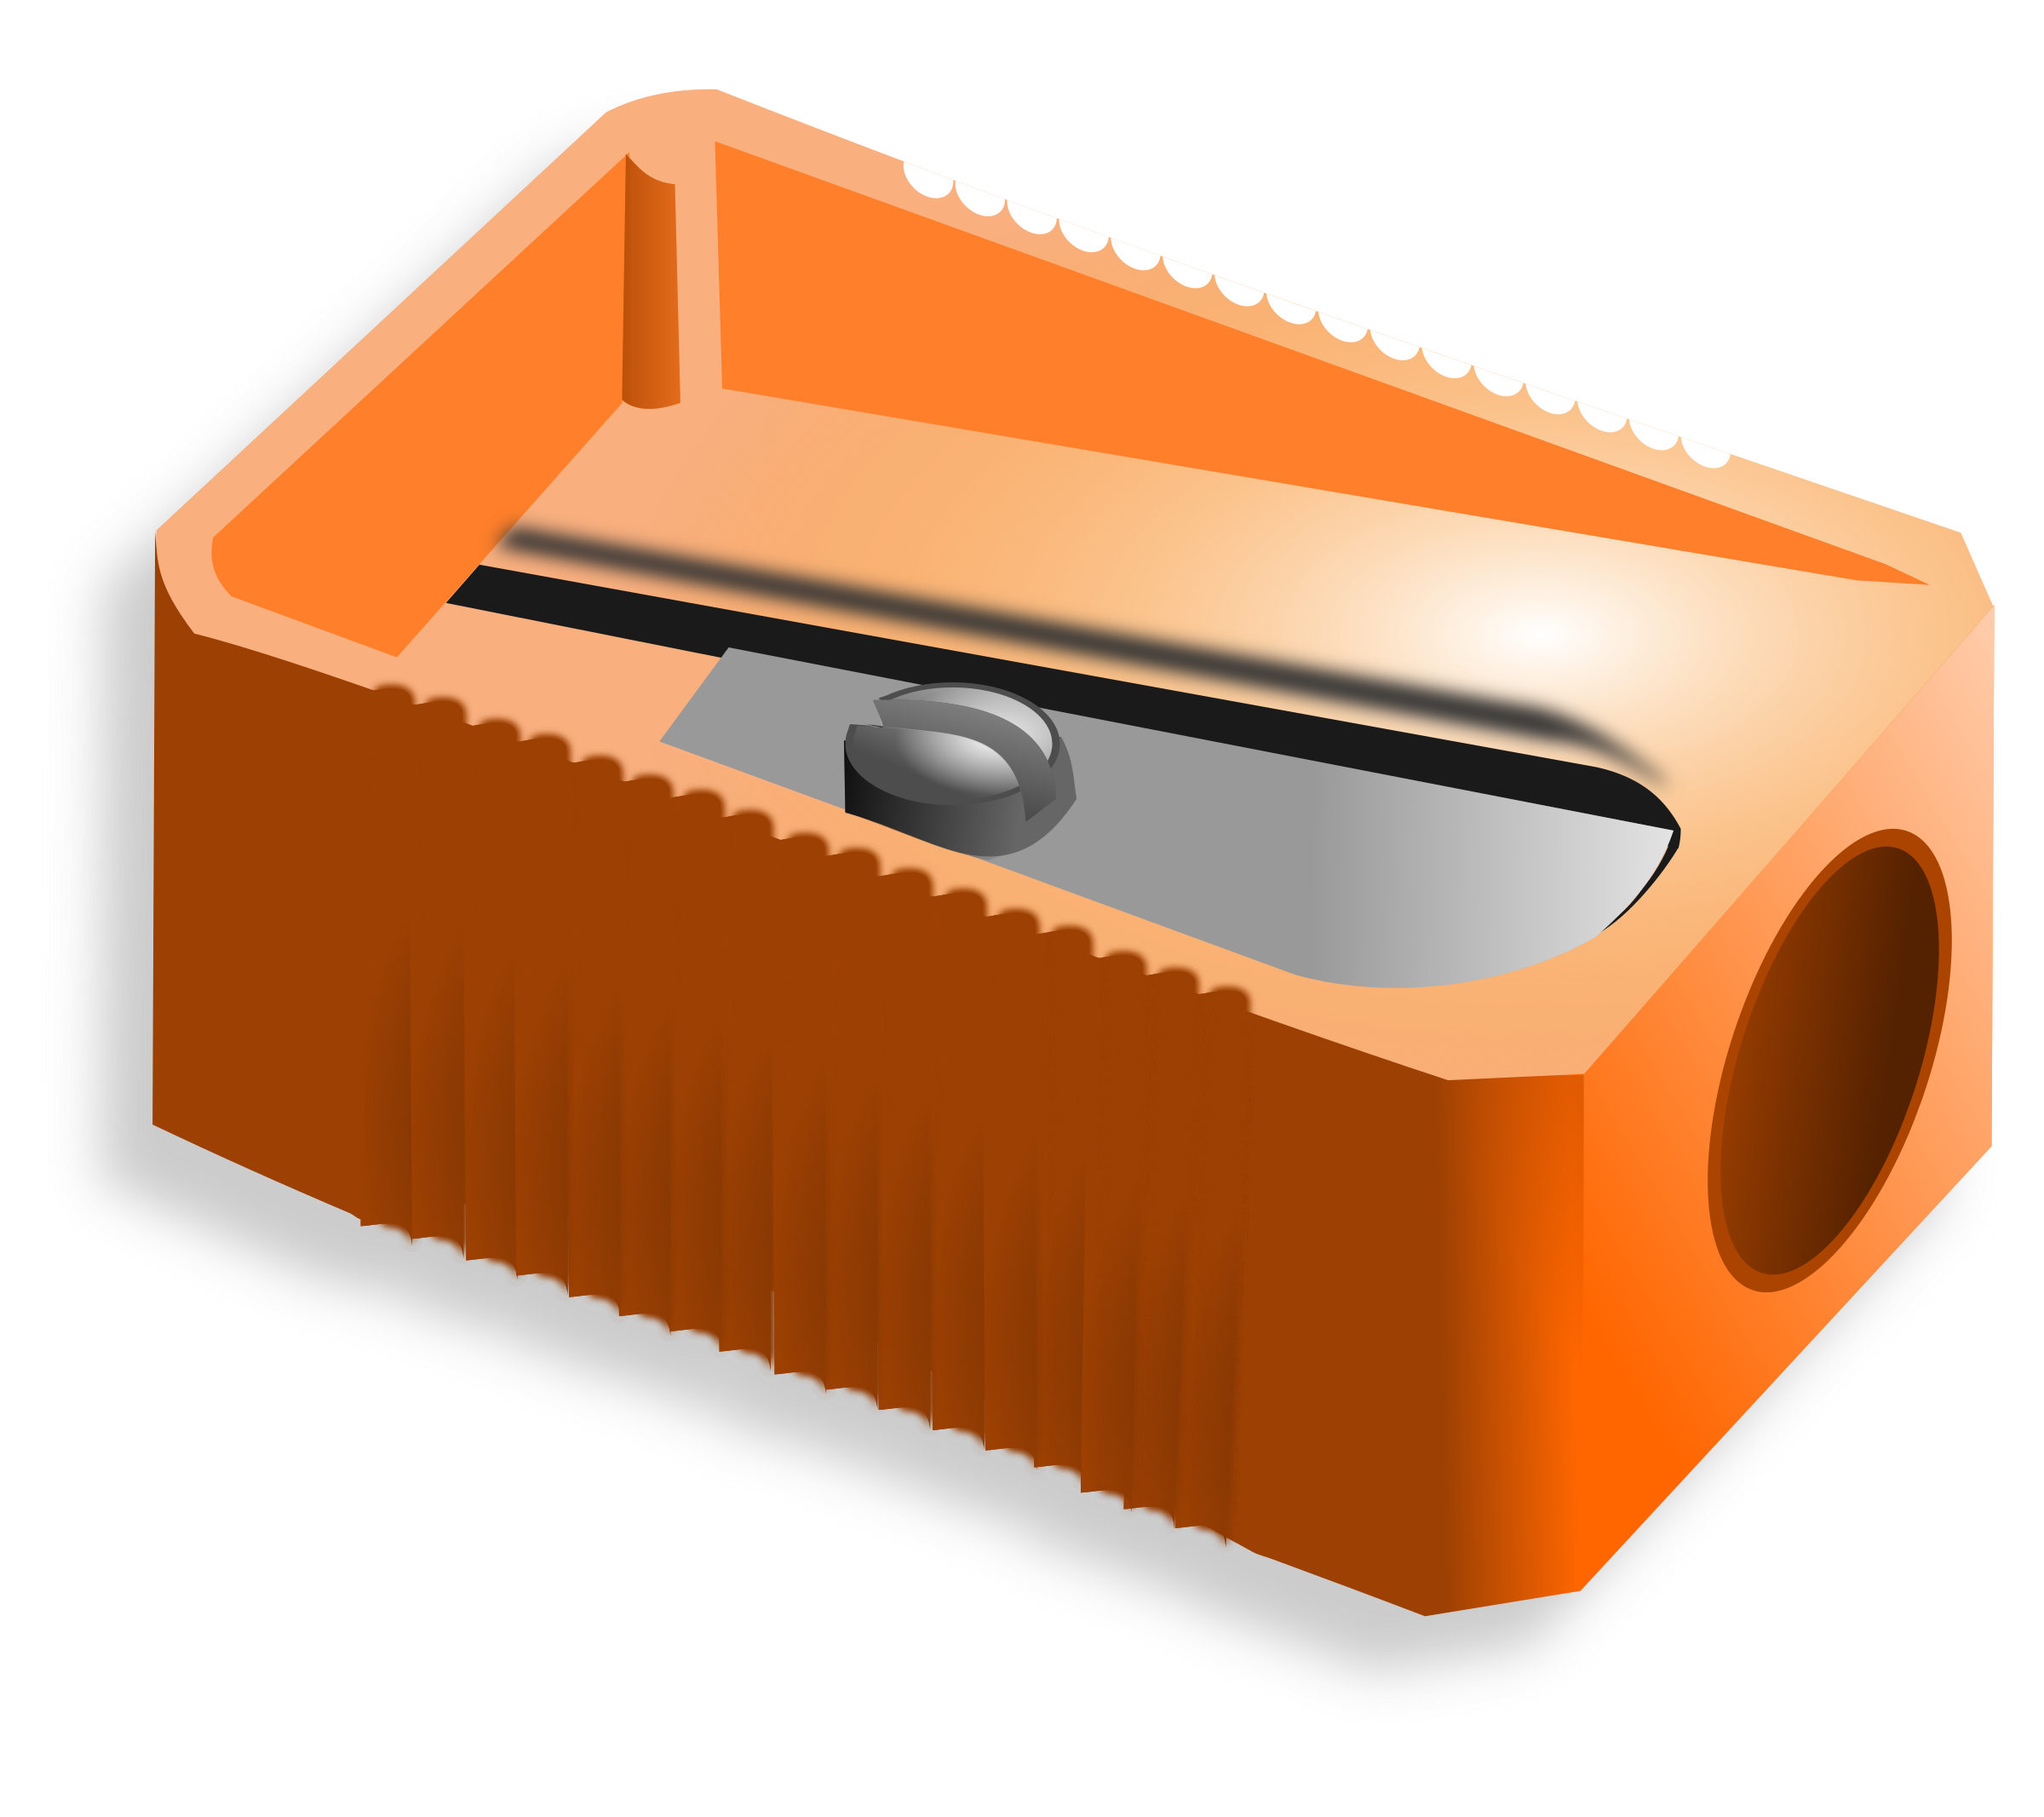 Sharpener big image png. Clipart pencil simple